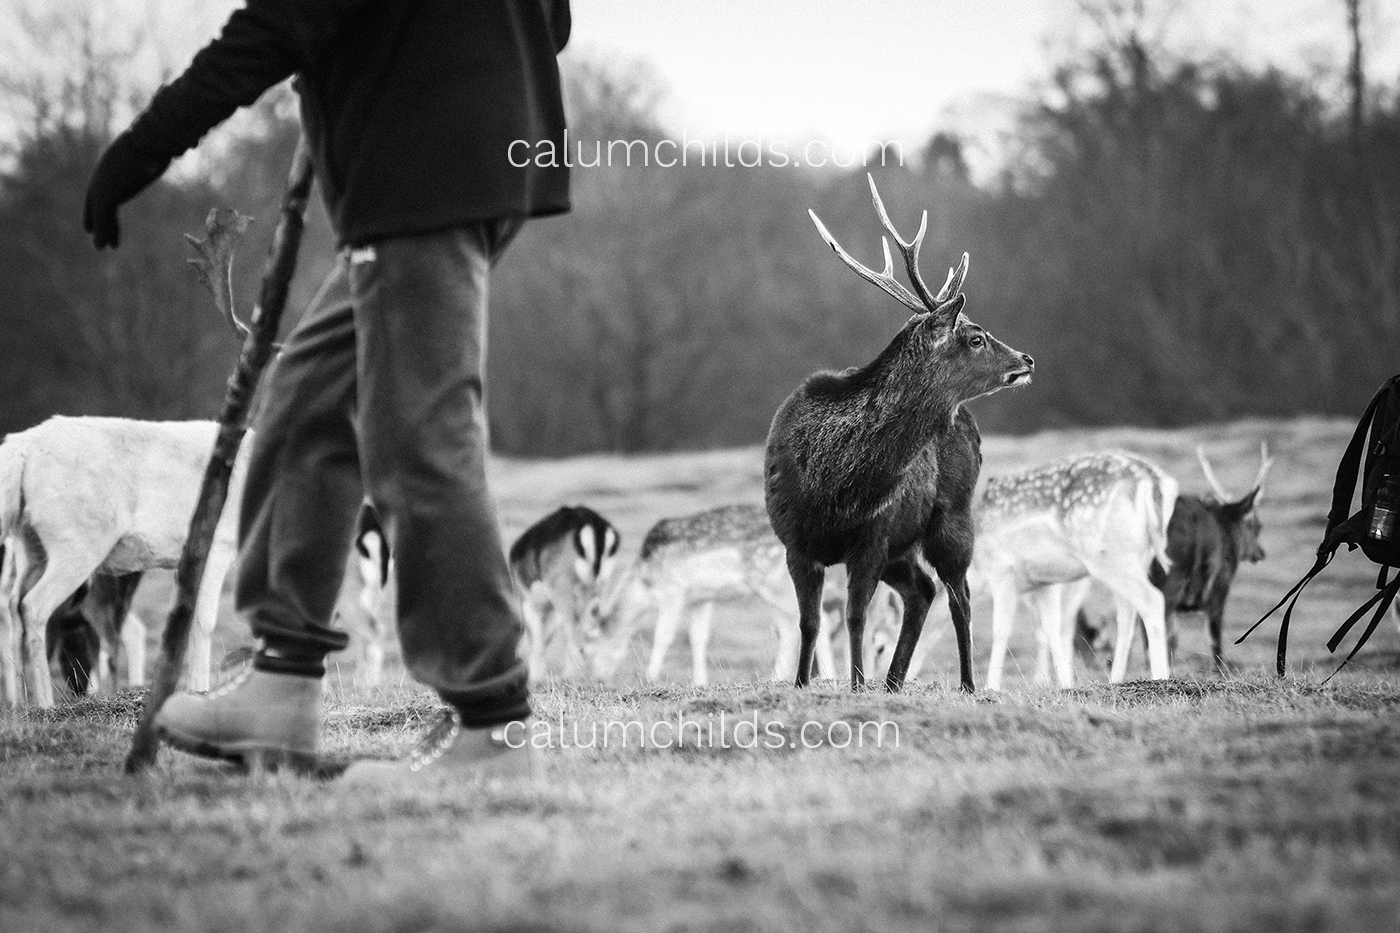 A male deer looks into the distance on the right of the image whilst a person walks by on the left.